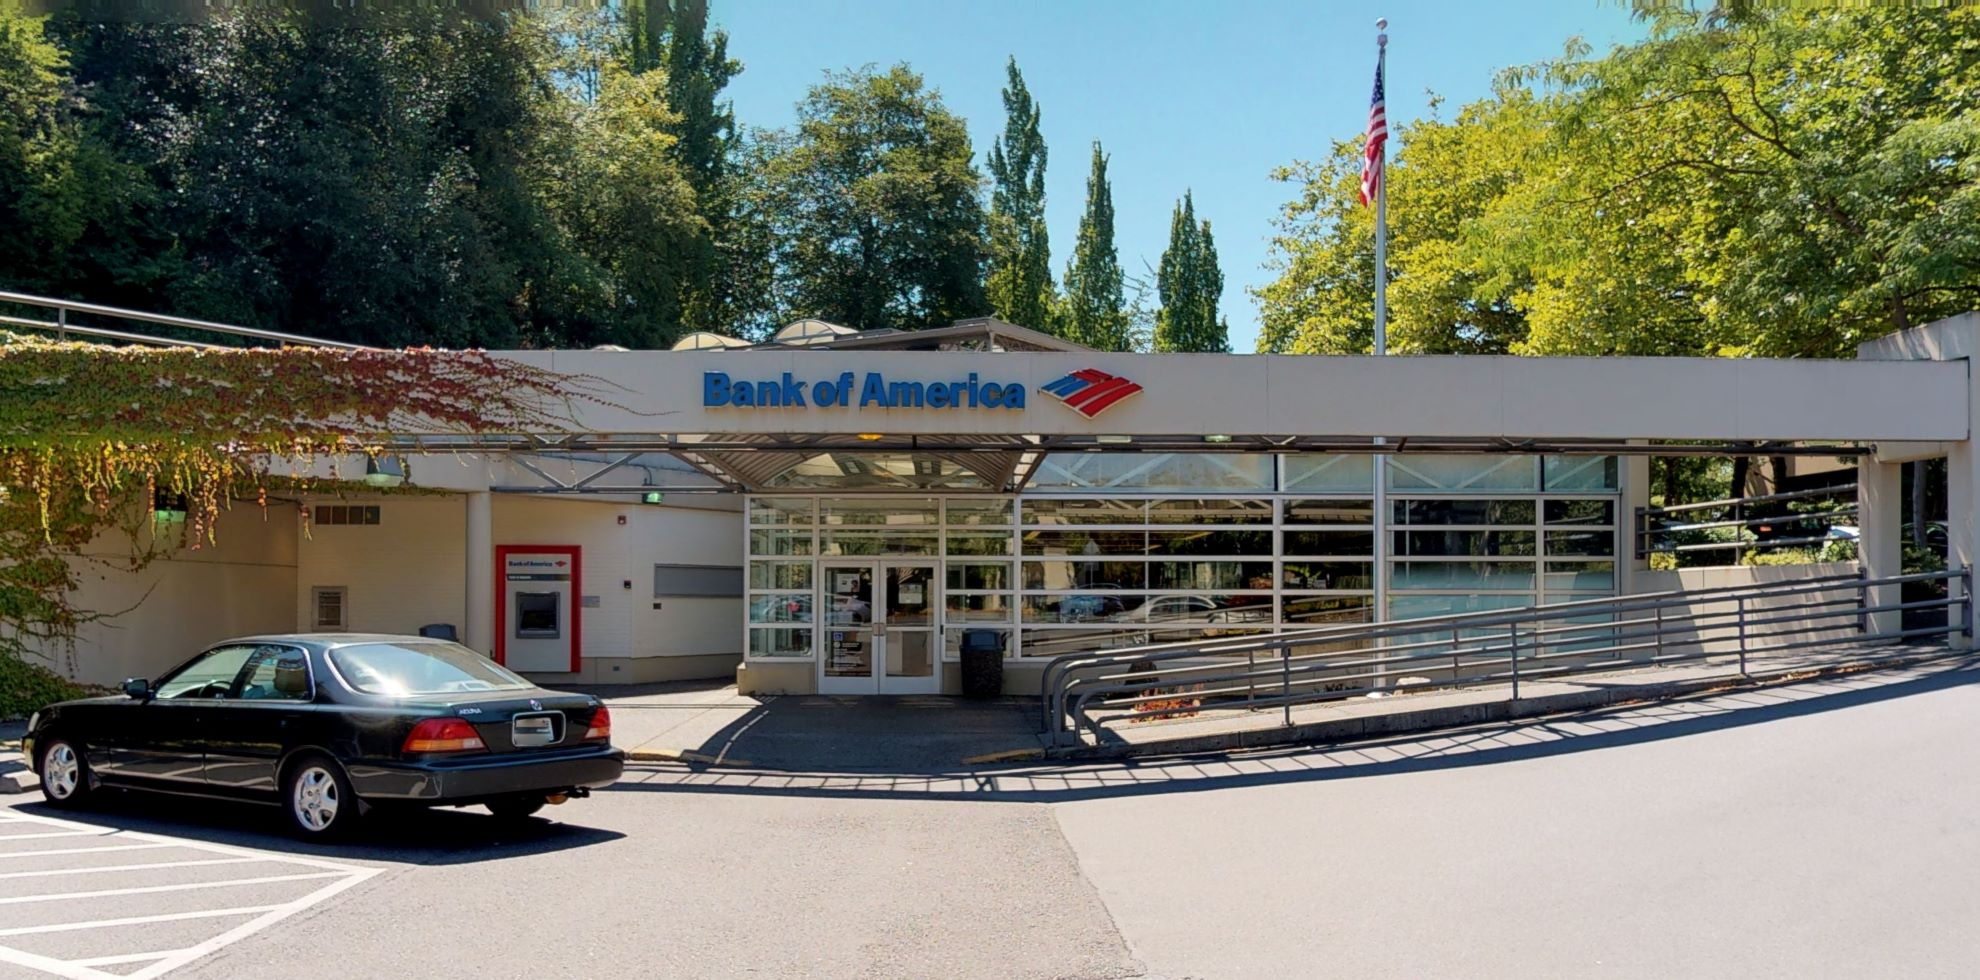 Bank of America financial center with drive-thru ATM | 2830 80th Ave SE, Mercer Island, WA 98040